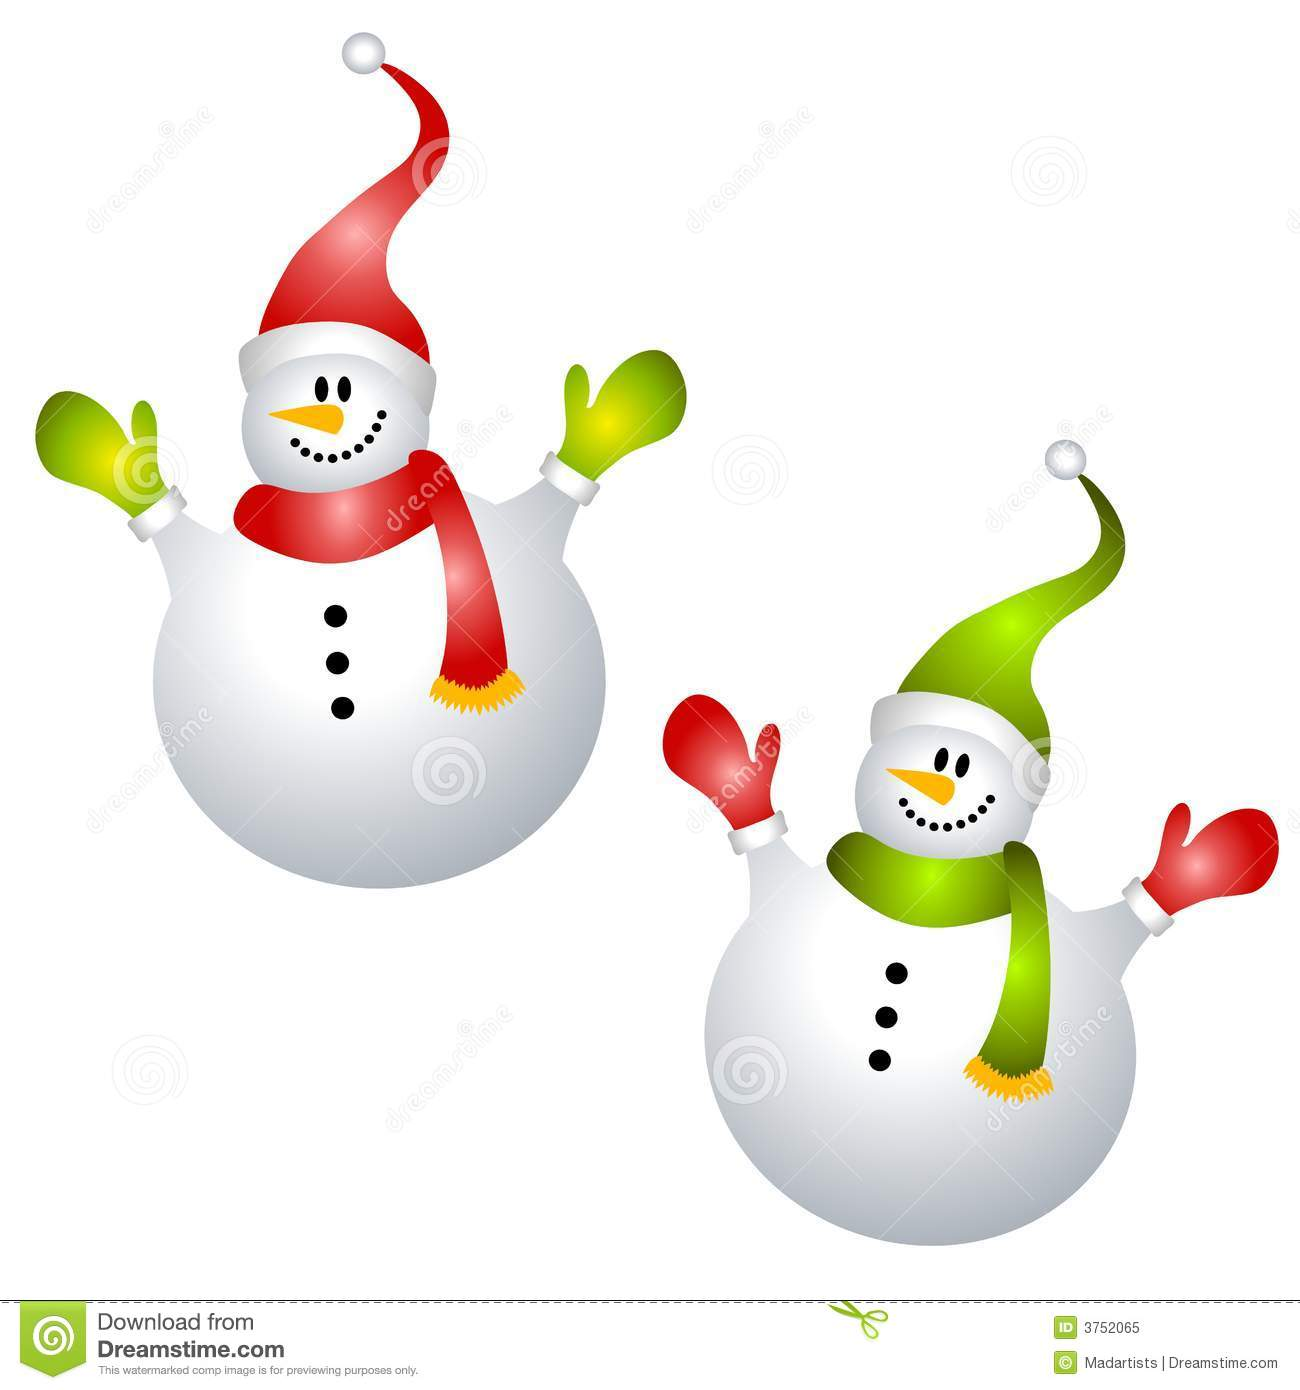 clip art illustration featuring snowmen dressed in hat, scarf, mittens ...